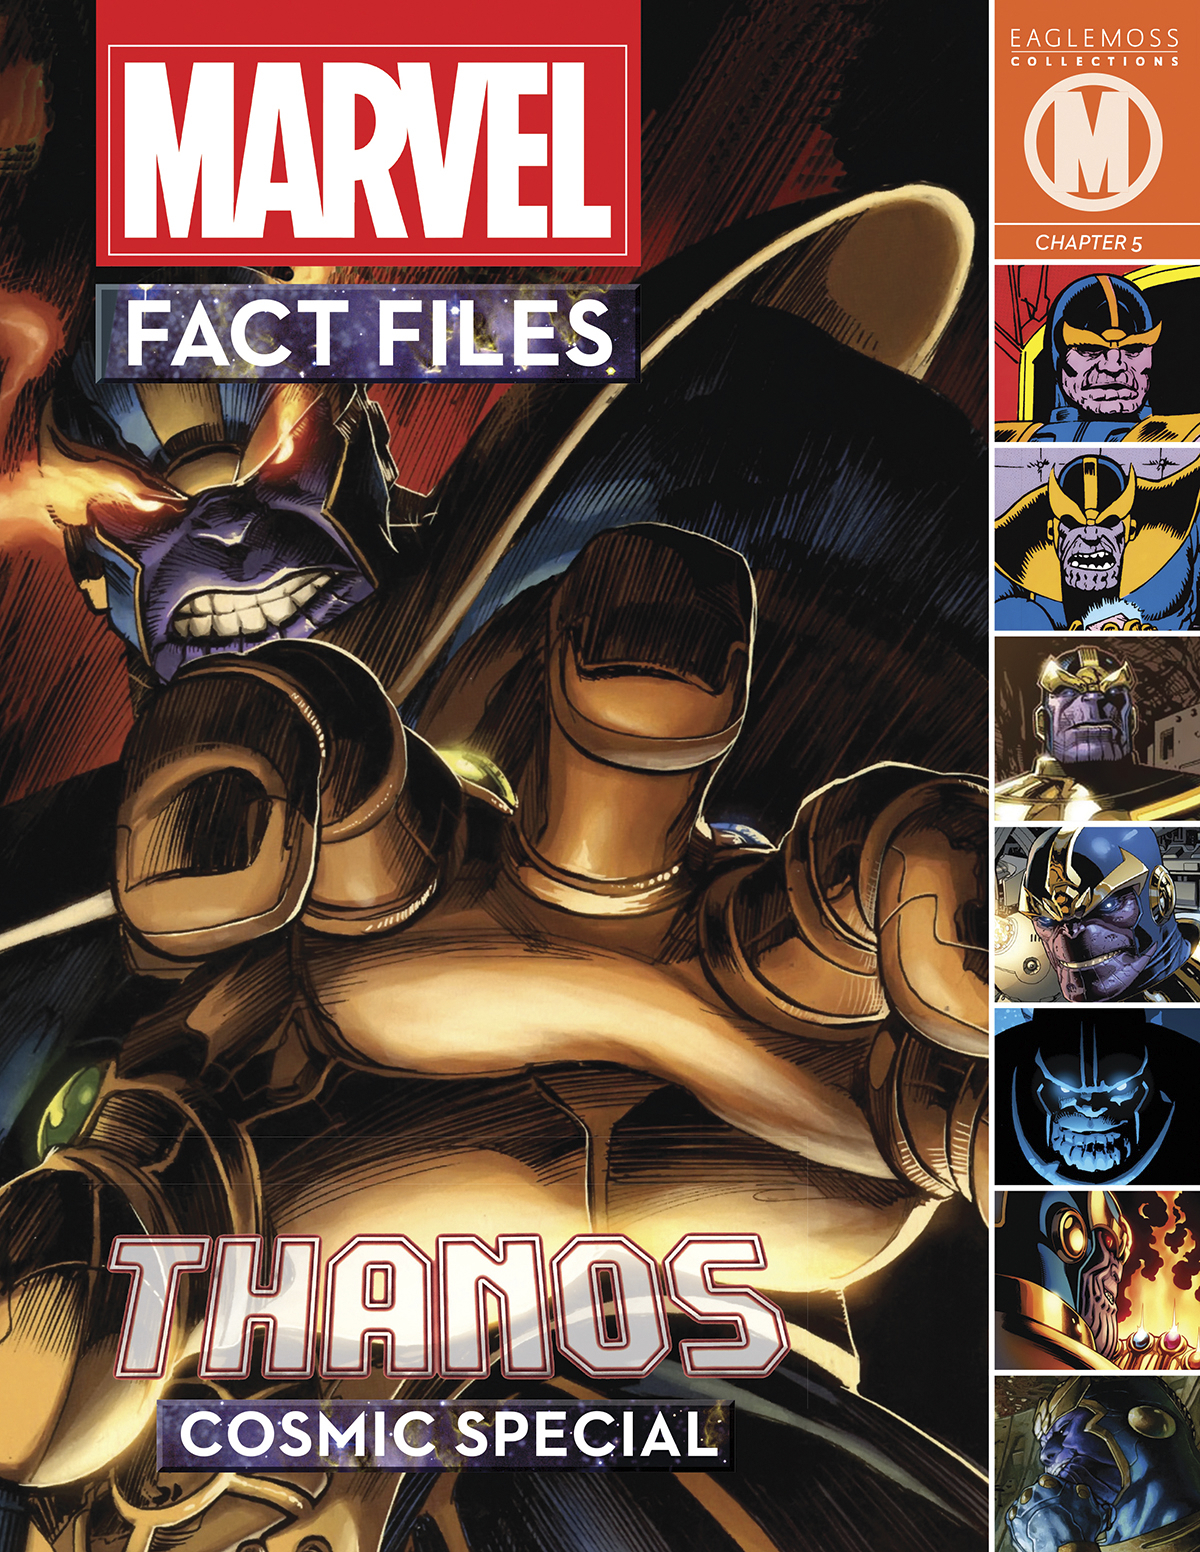 MARVEL FACT FILES COSMIC SPECIAL #3 THANOS